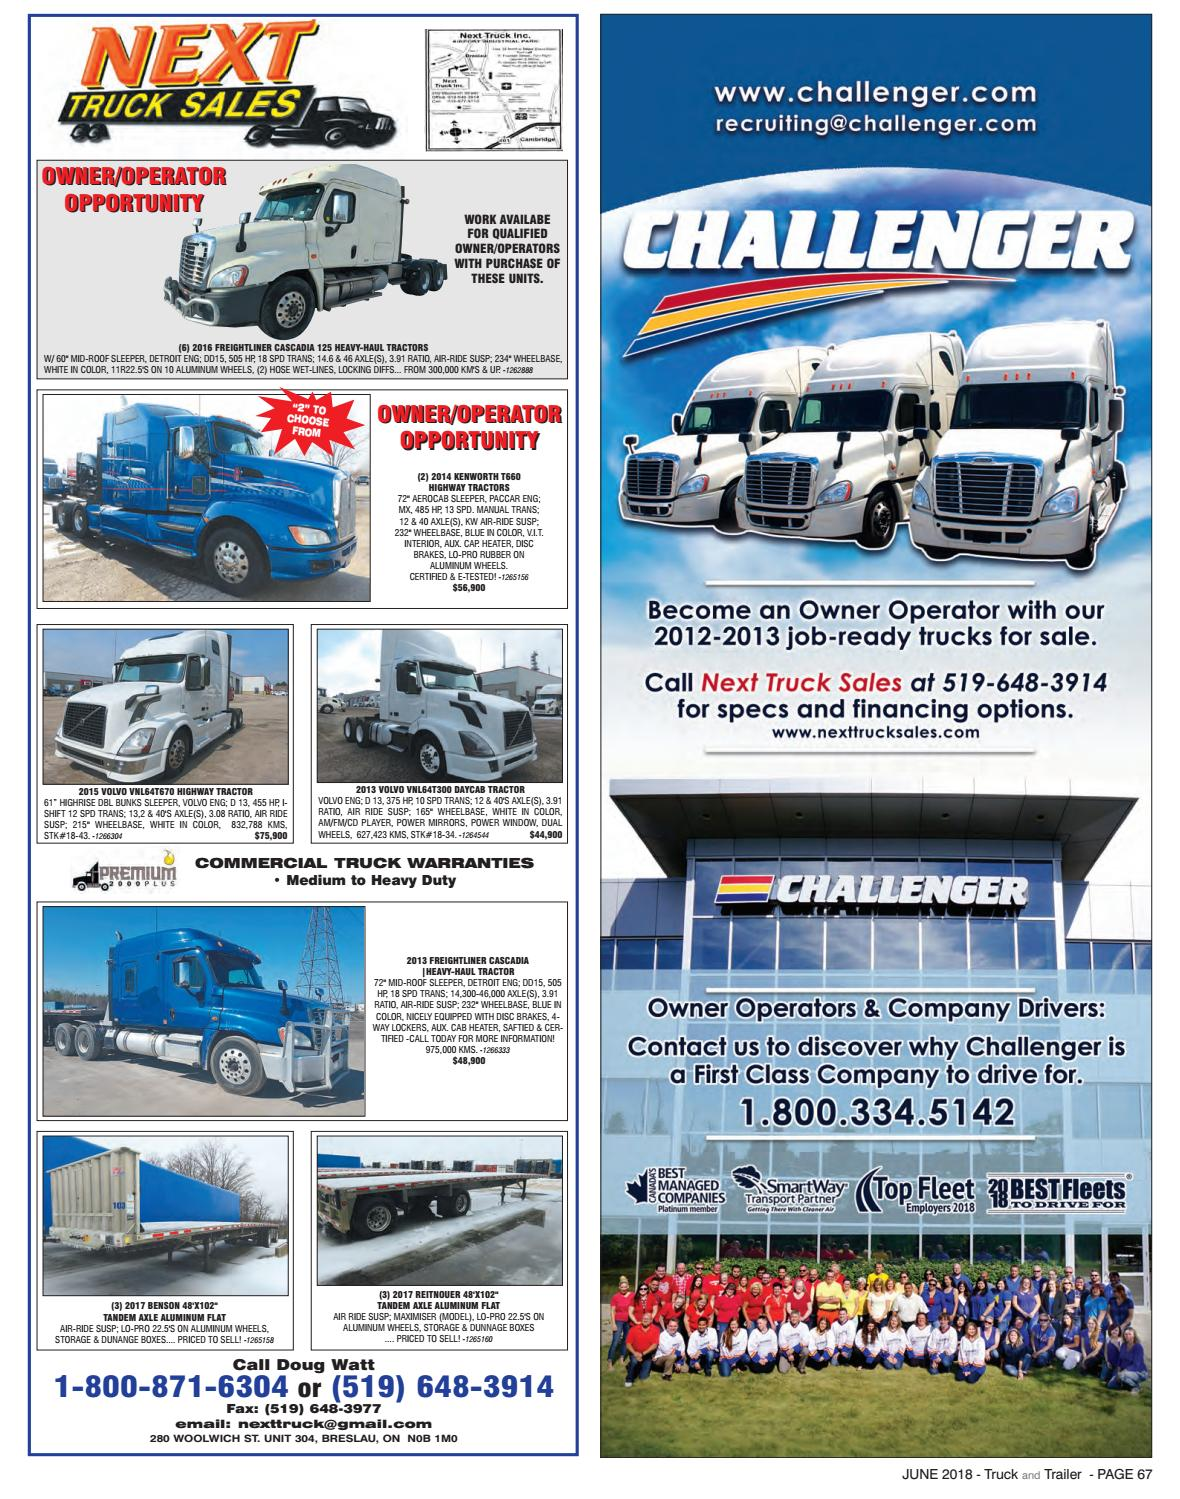 Truck and Trailer June 2018 by Annex Business Media - issuu